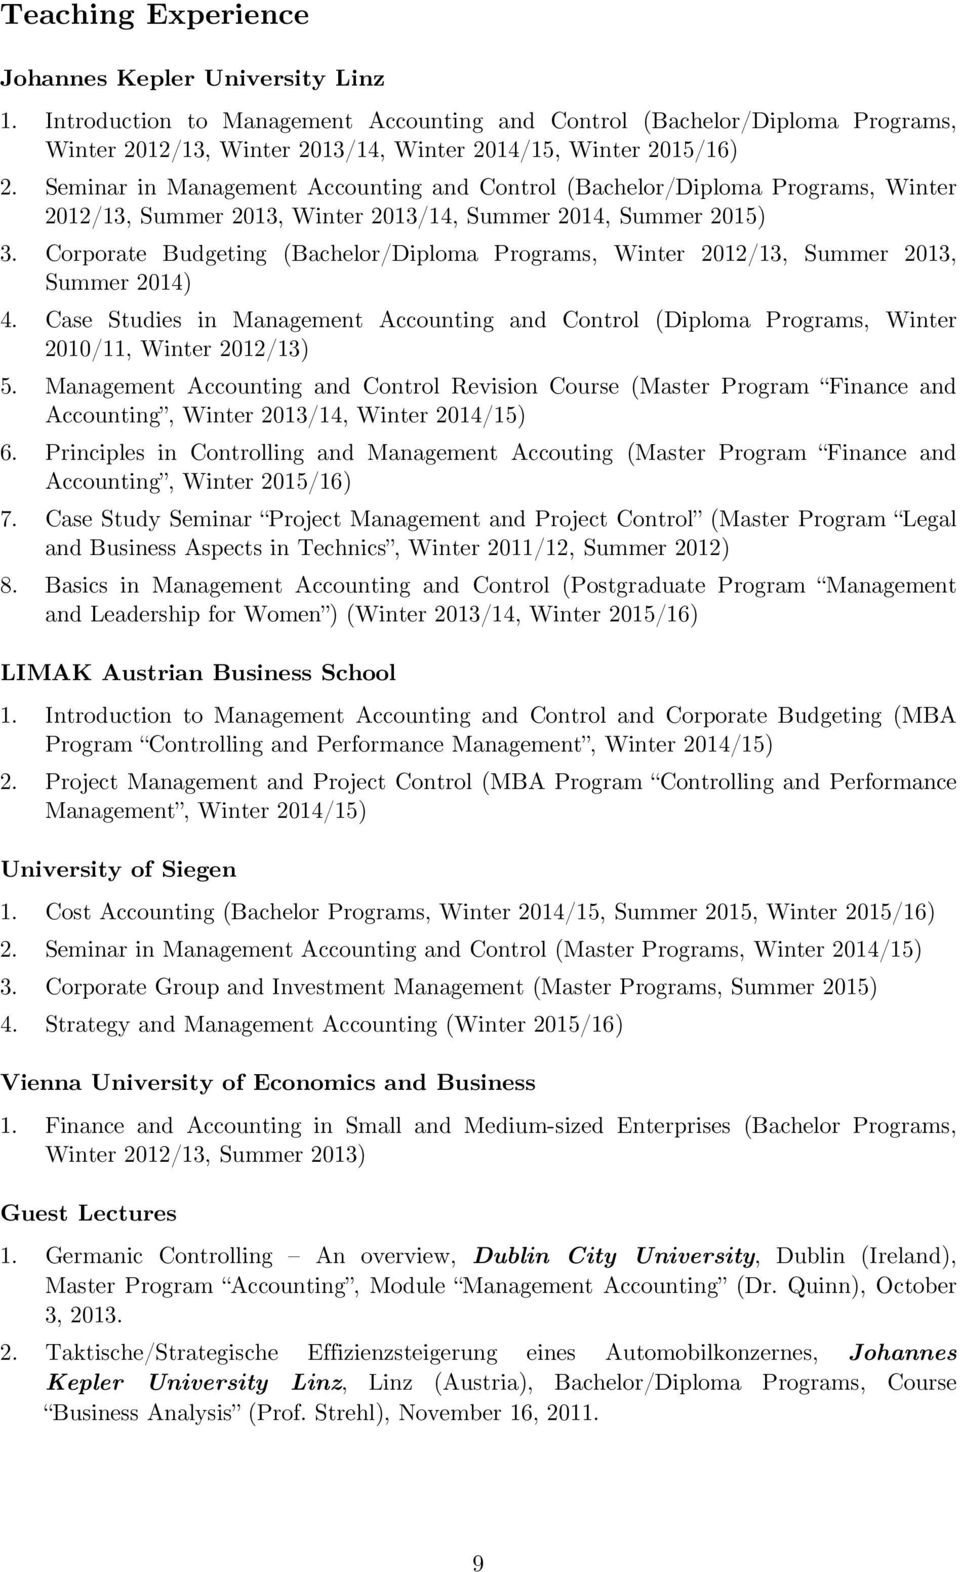 Corporate Budgeting (Bachelor/Diploma Programs, Winter 2012/13, Summer 2013, Summer 2014) 4. Case Studies in Management Accounting and Control (Diploma Programs, Winter 2010/11, Winter 2012/13) 5.